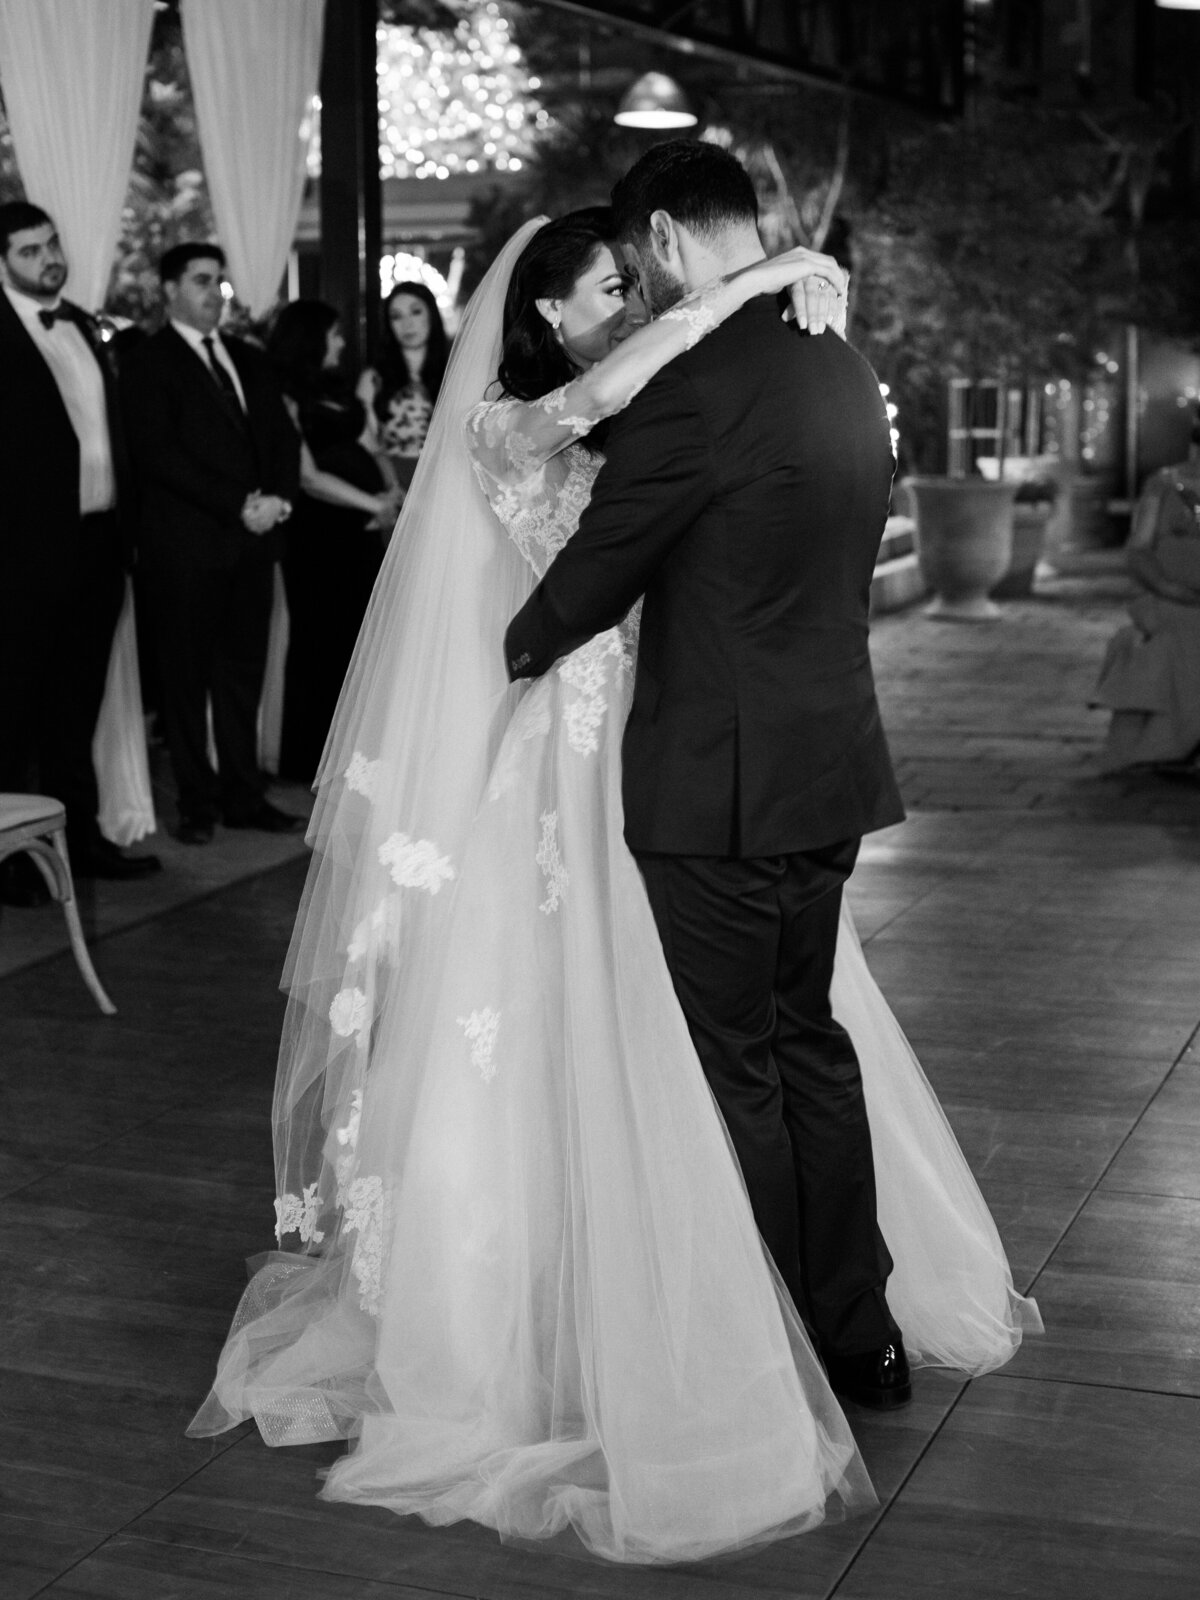 Kaylea Moreno_wedding gallery - Rami-Cassandra-Wedding-krmorenophoto-686